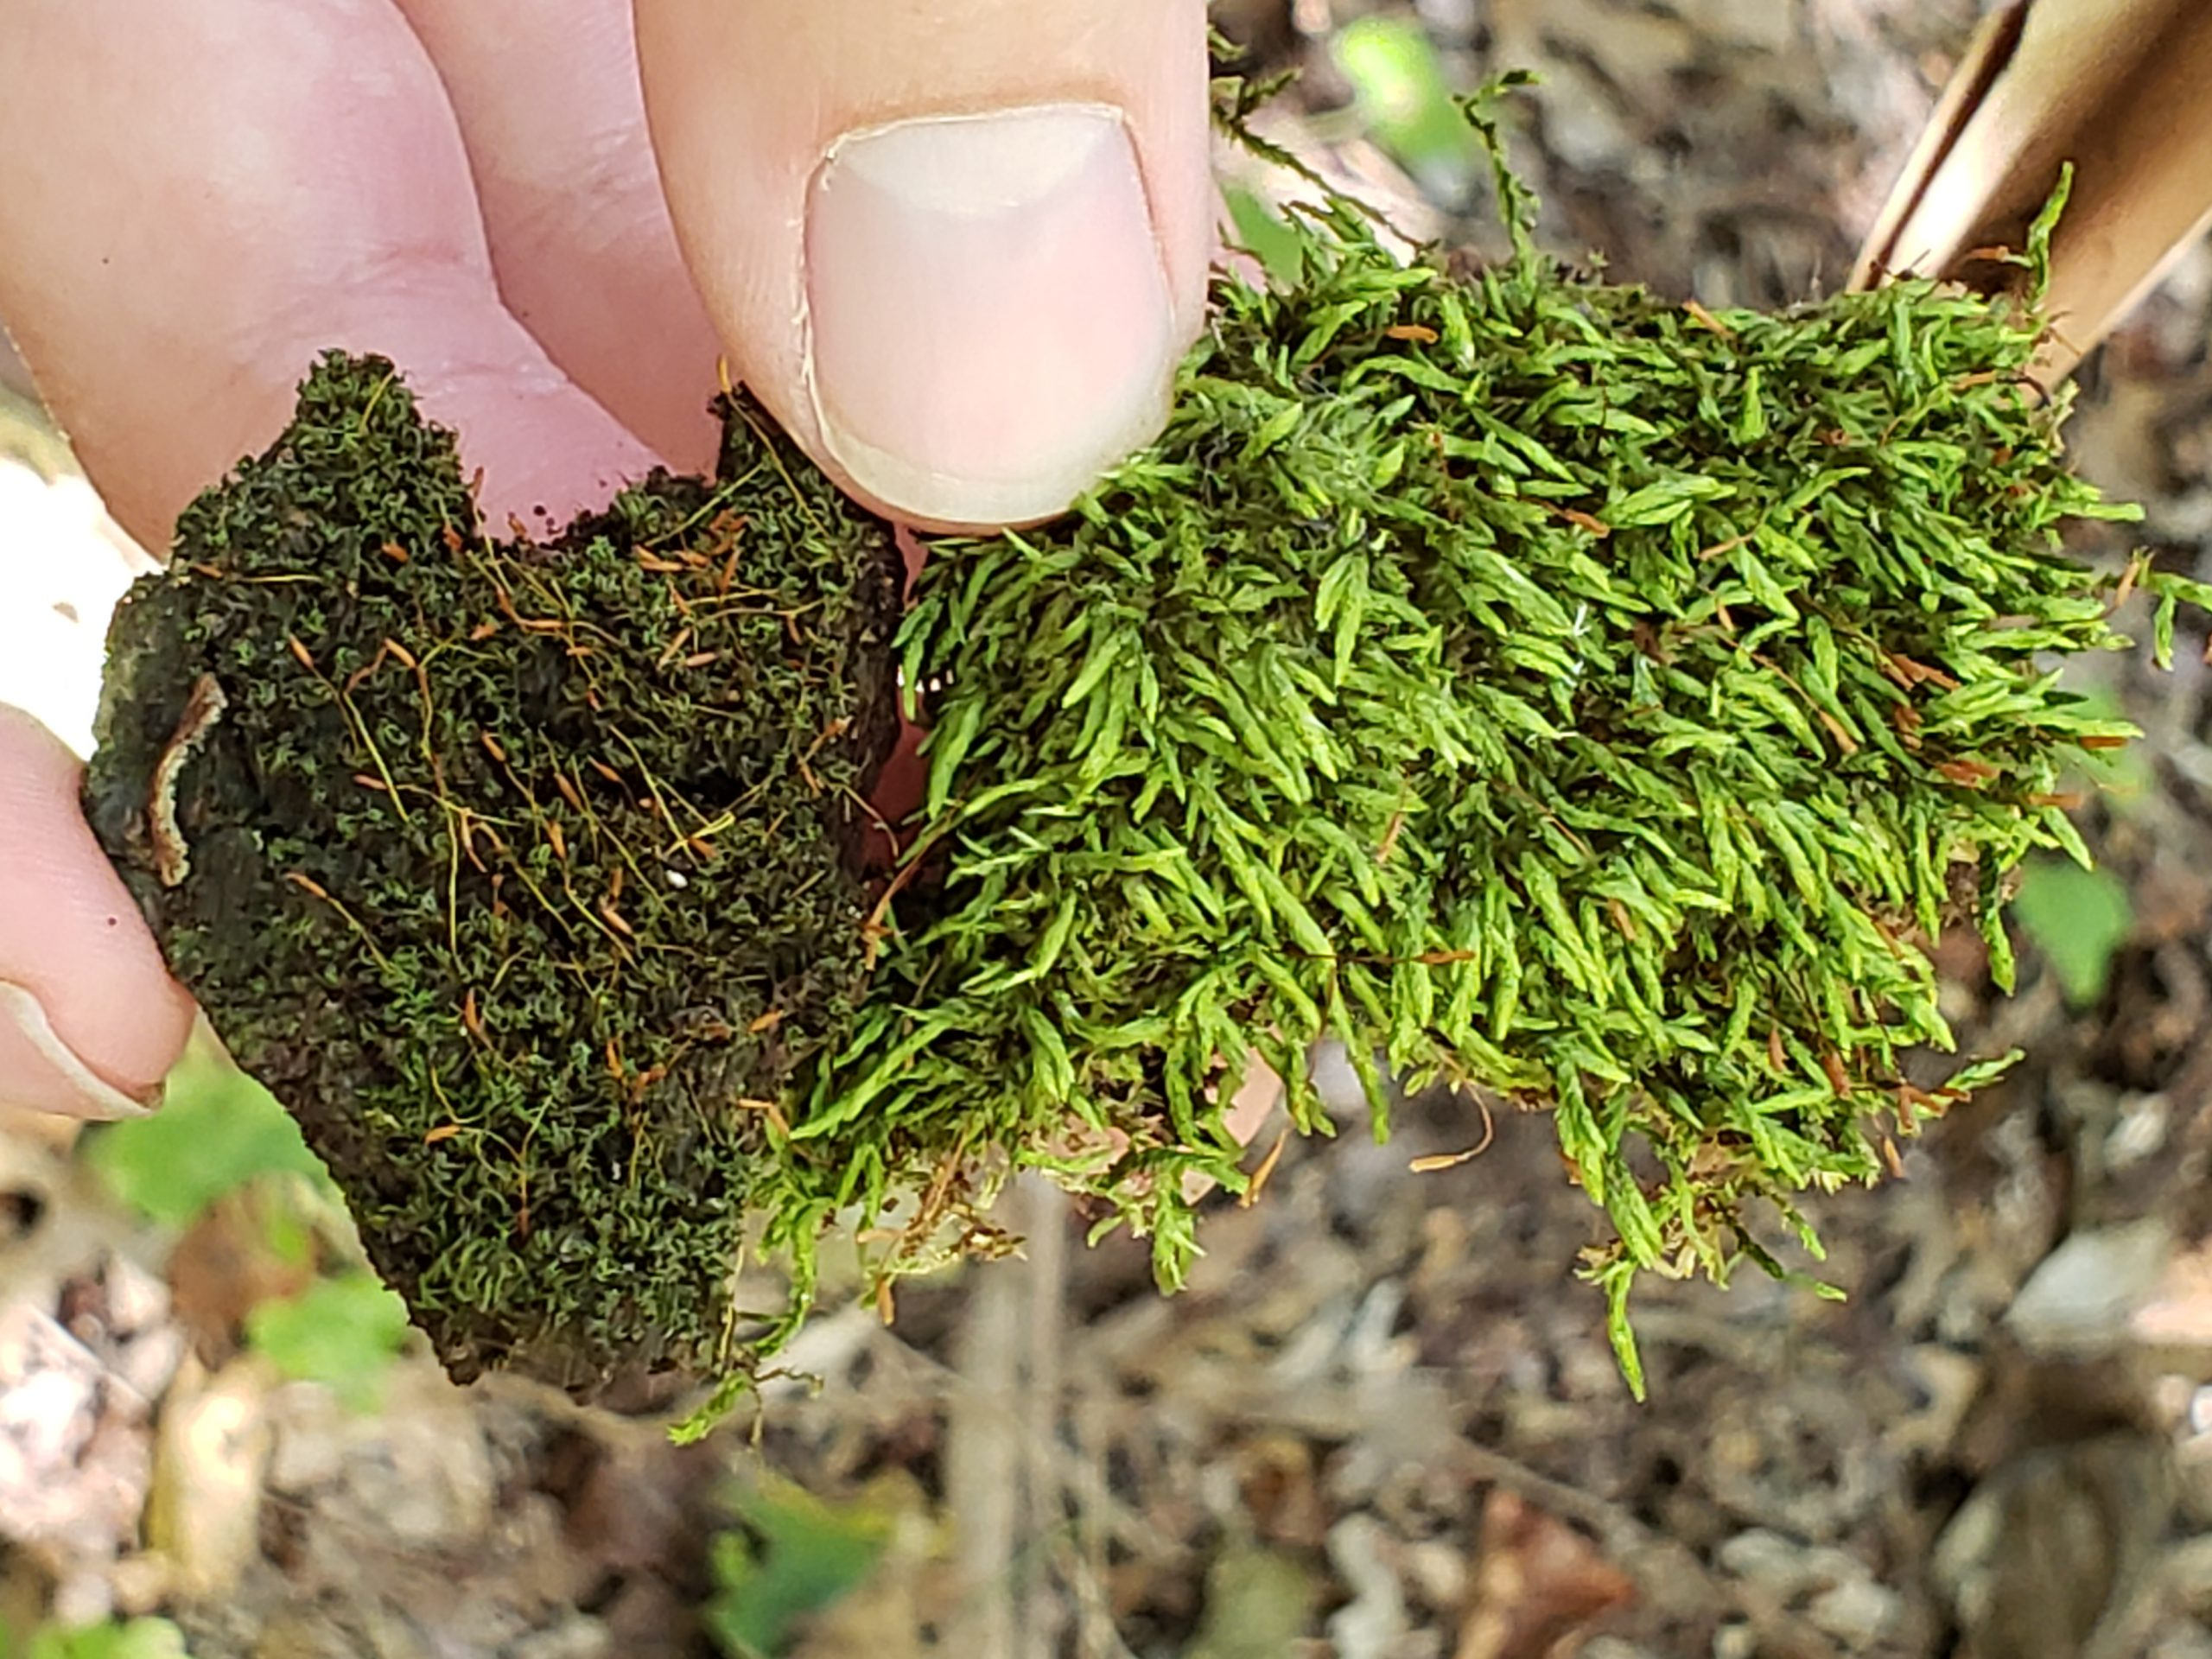 BRIT continues to add to its bryophyte collection, though nearly a quarter of the specimens were collected by Eula Whitehouse last century.